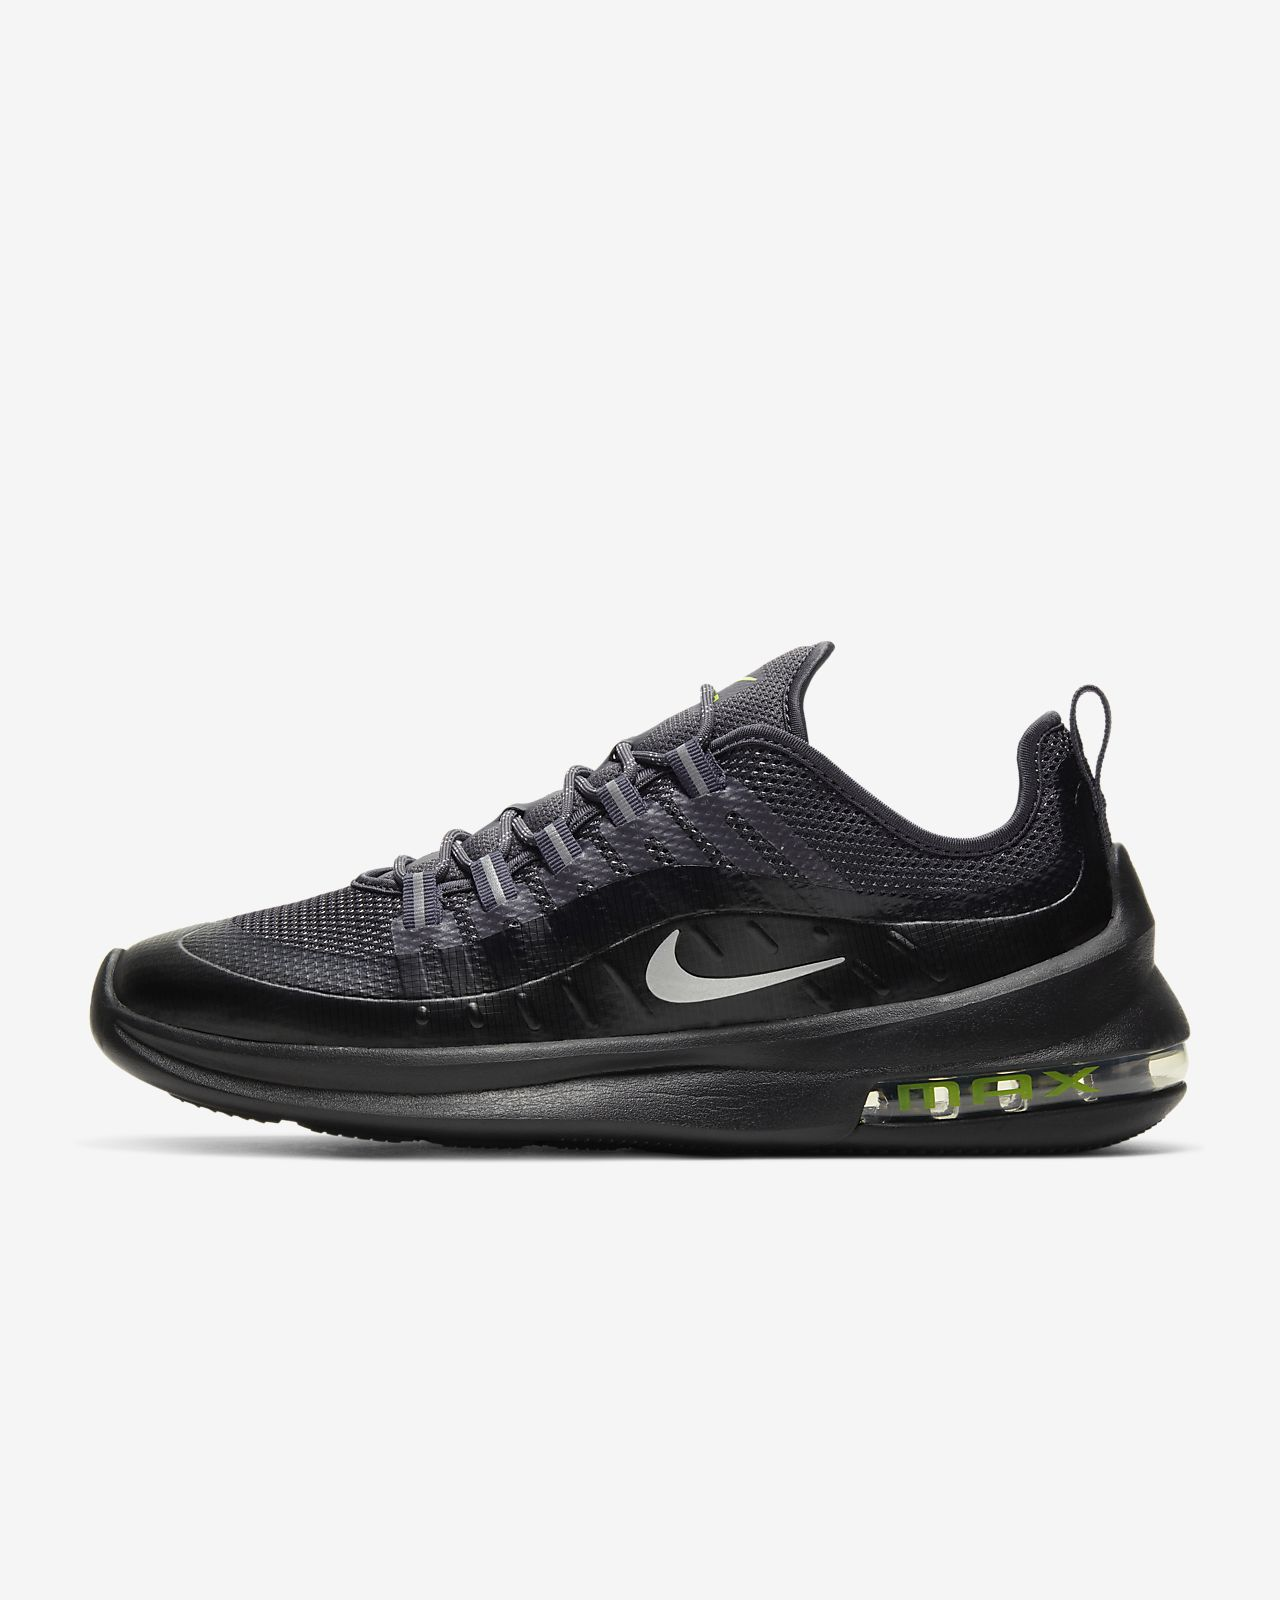 Nike Air Max Axis Premium Men's Shoe